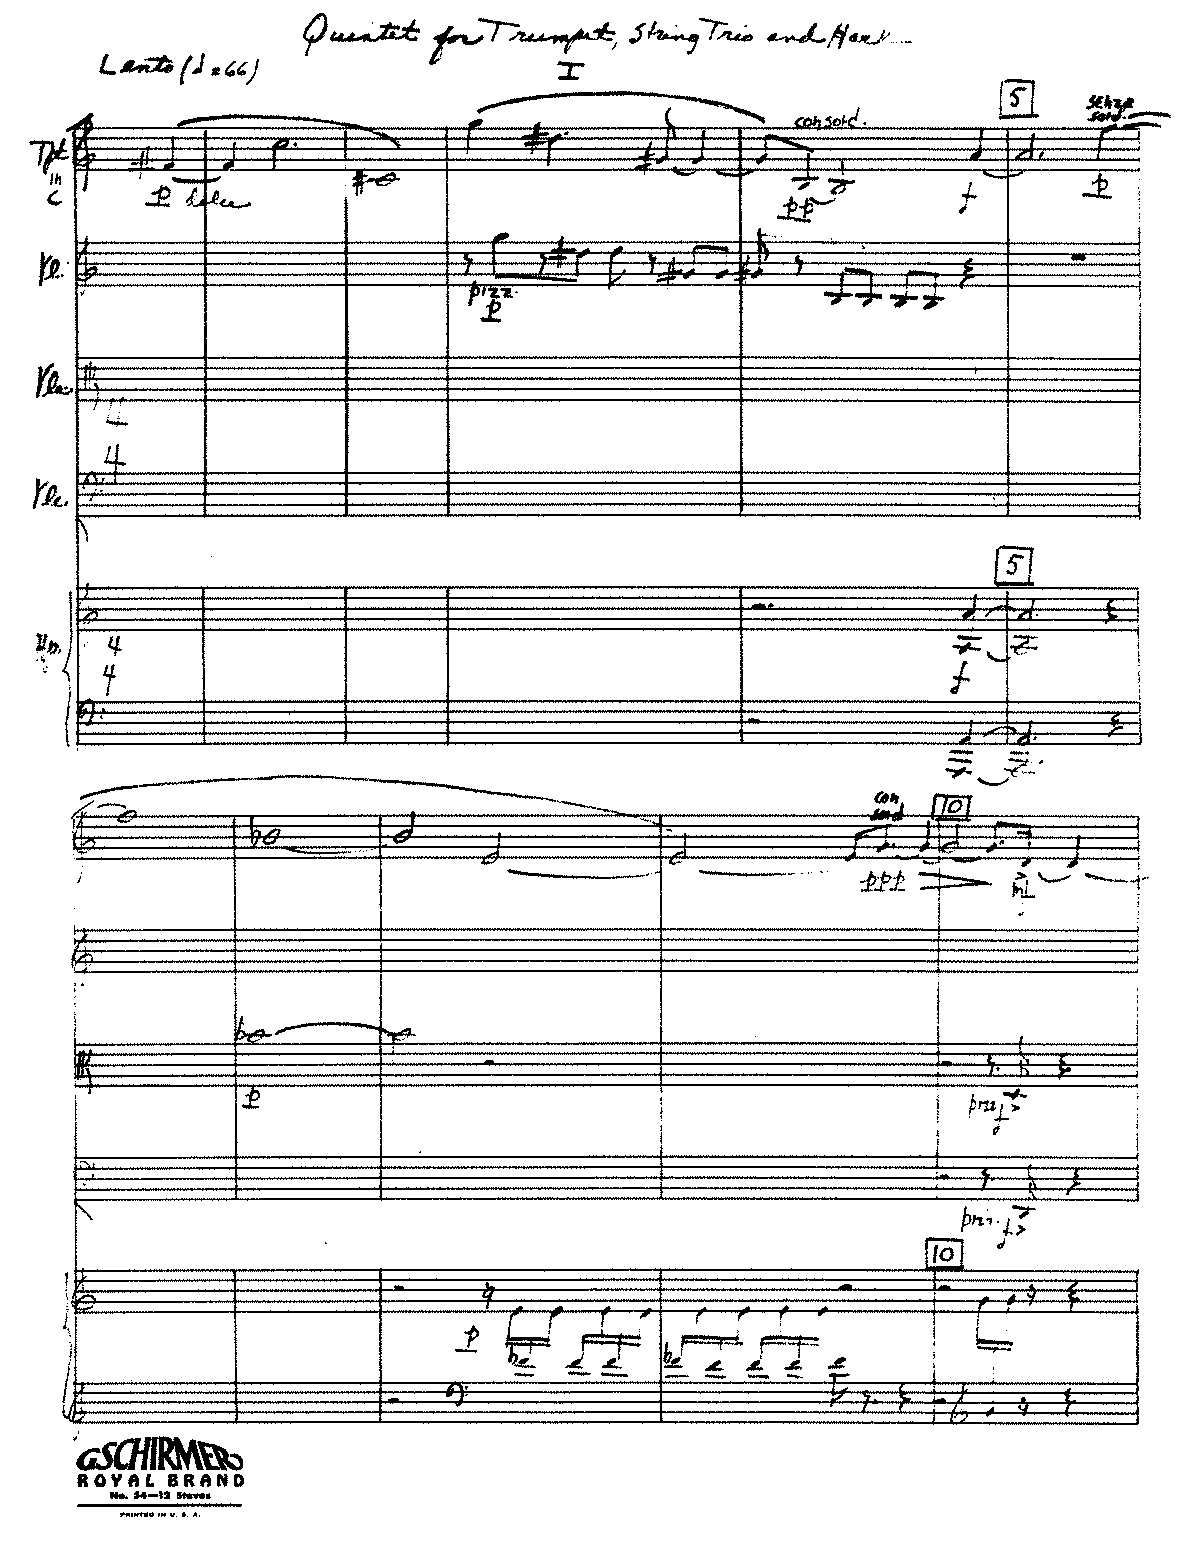 PMLP361960-Quintet for Trumpet, String Trio, and Harp Score.pdf